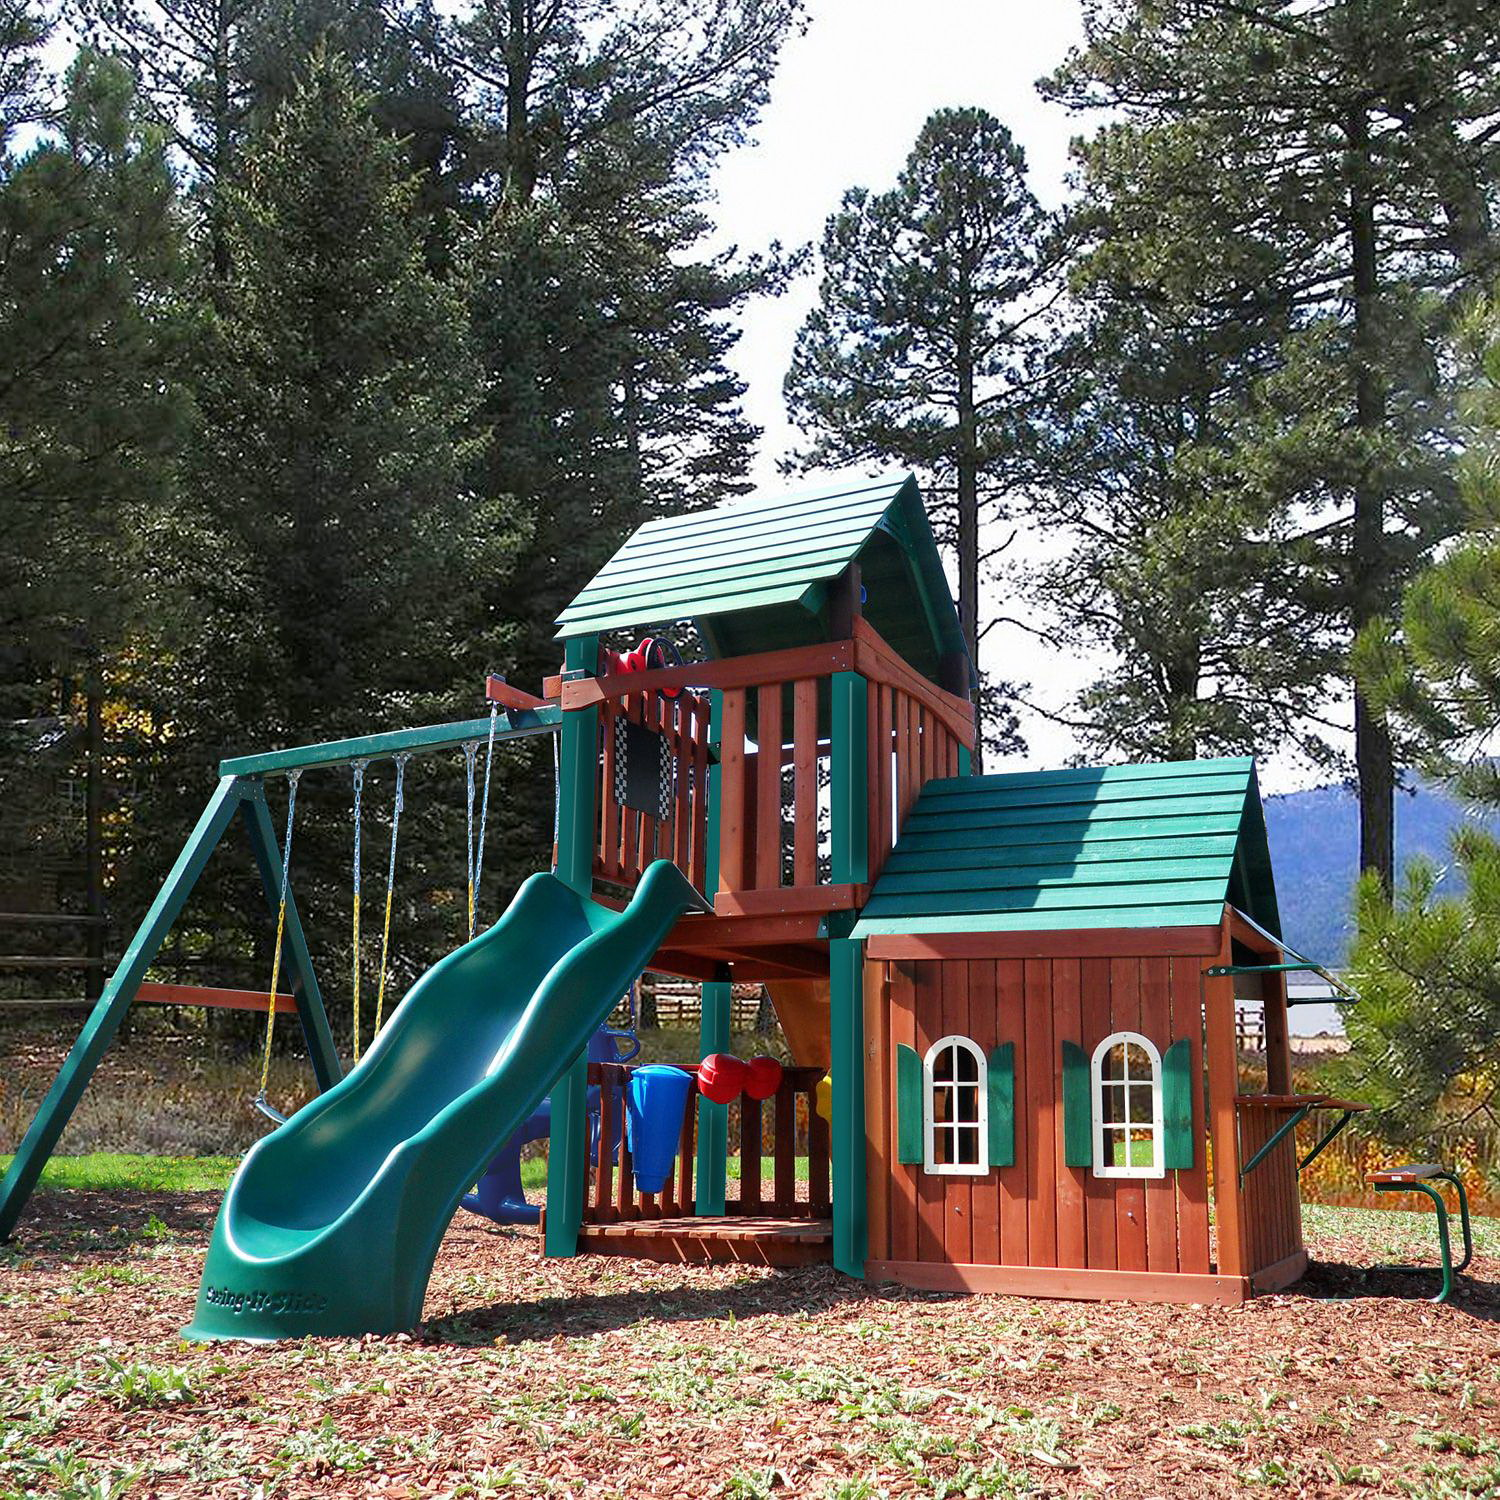 New Kids Huge Wood Playground Set Swing Set Play House Wooden Playhouse Slide Ebay